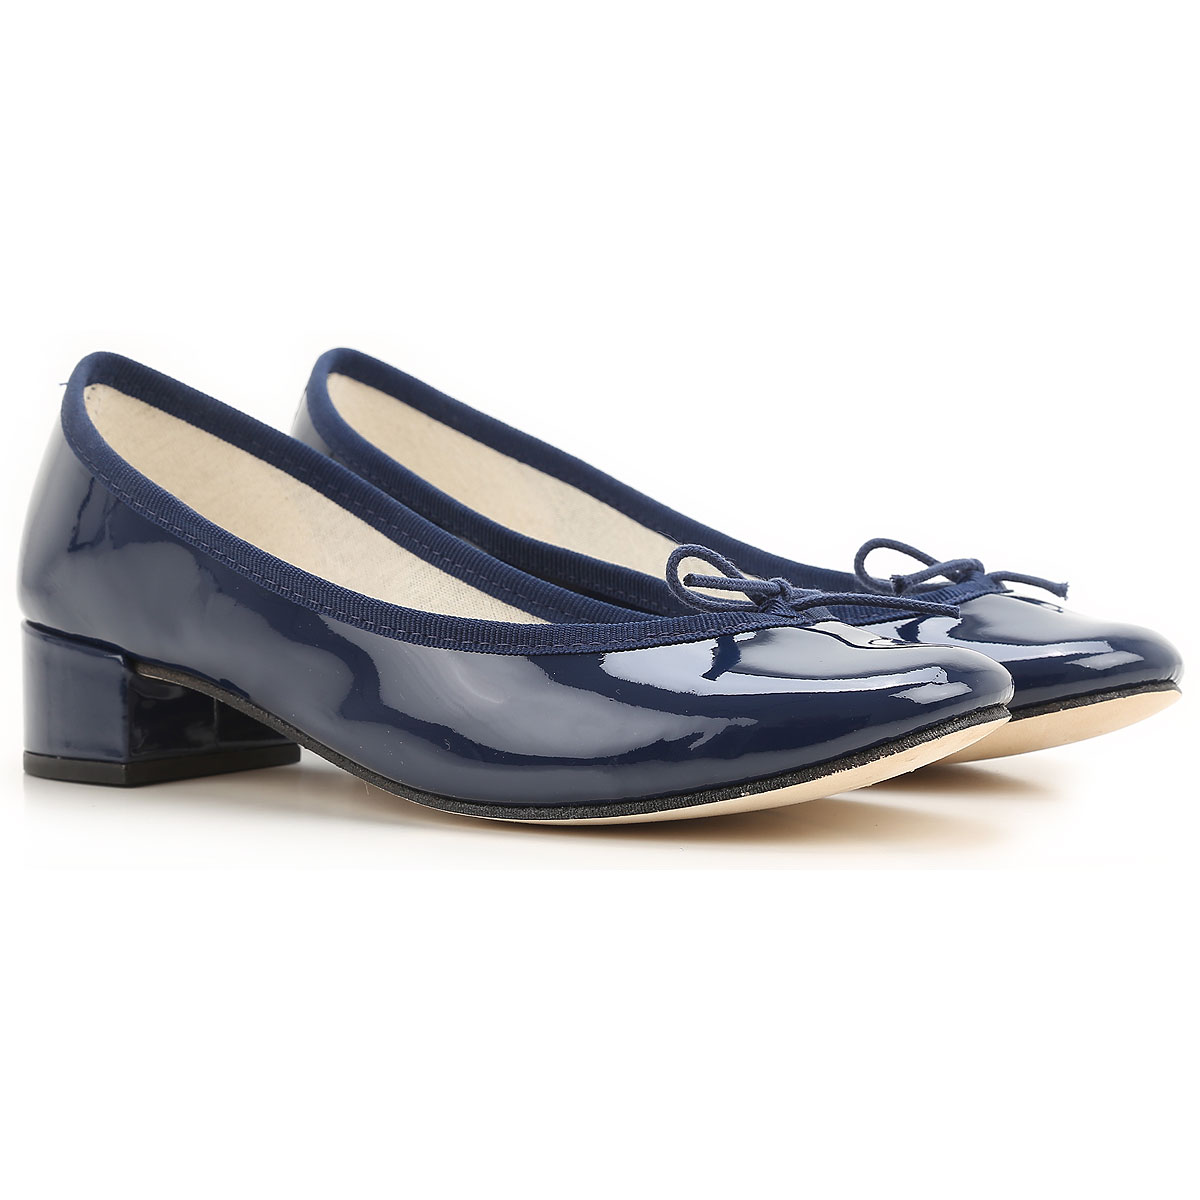 Image of Repetto Ballet Flats Ballerina Shoes for Women On Sale, navy, Patent Leather, 2017, 6 6.5